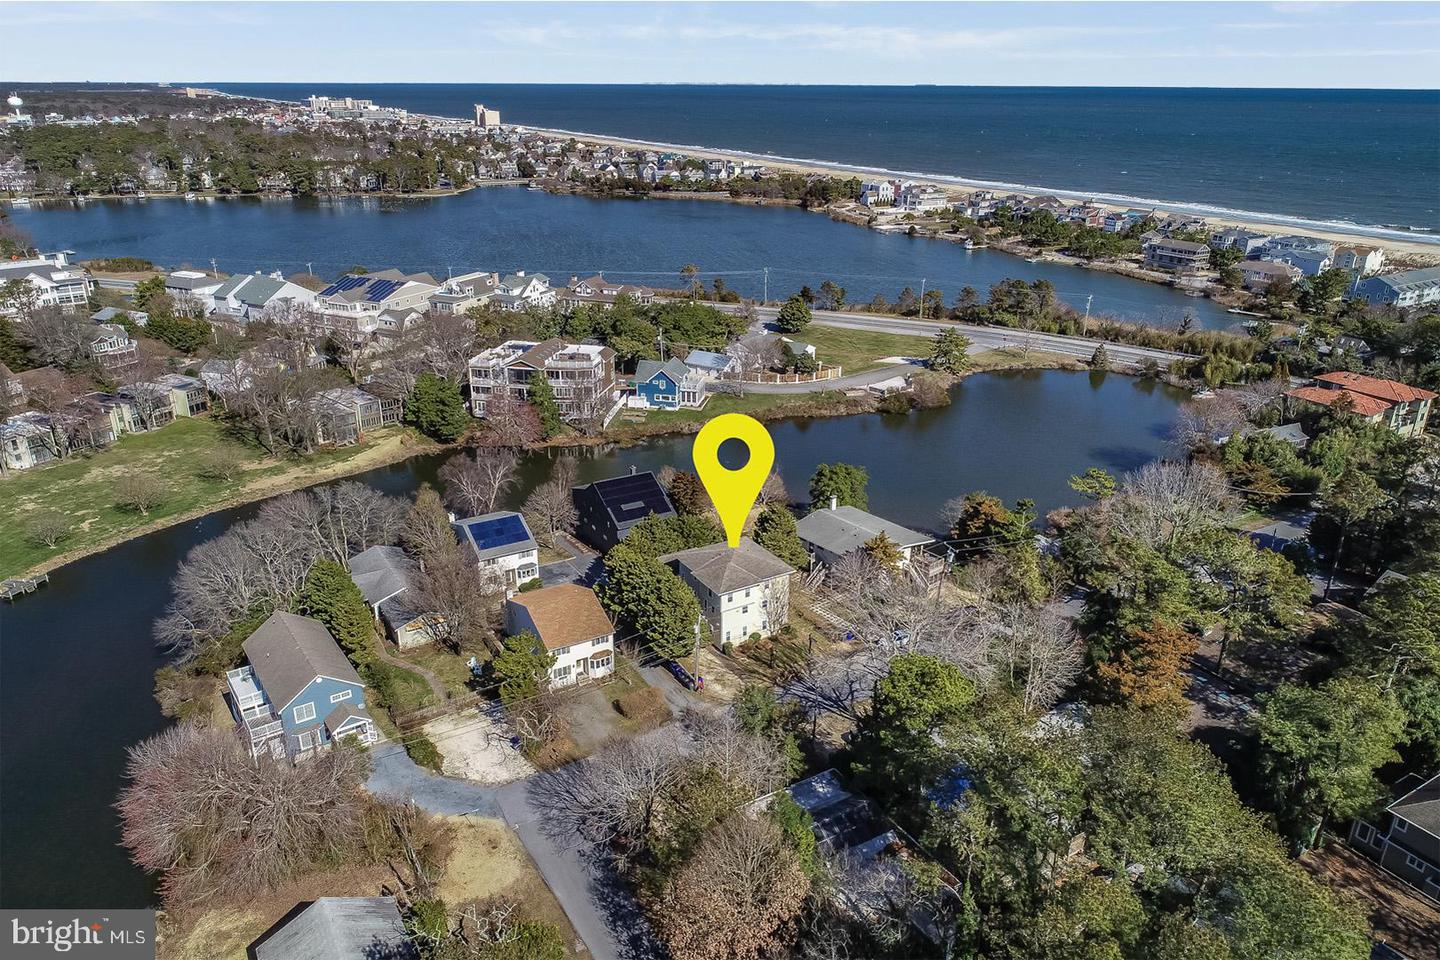 DESU155942-304073923754-2020-07-27-13-30-36 Sold Listings - Rehoboth Beach Real Estate - Bryce Lingo and Shaun Tull REALTORS, Rehoboth Beach, Delaware